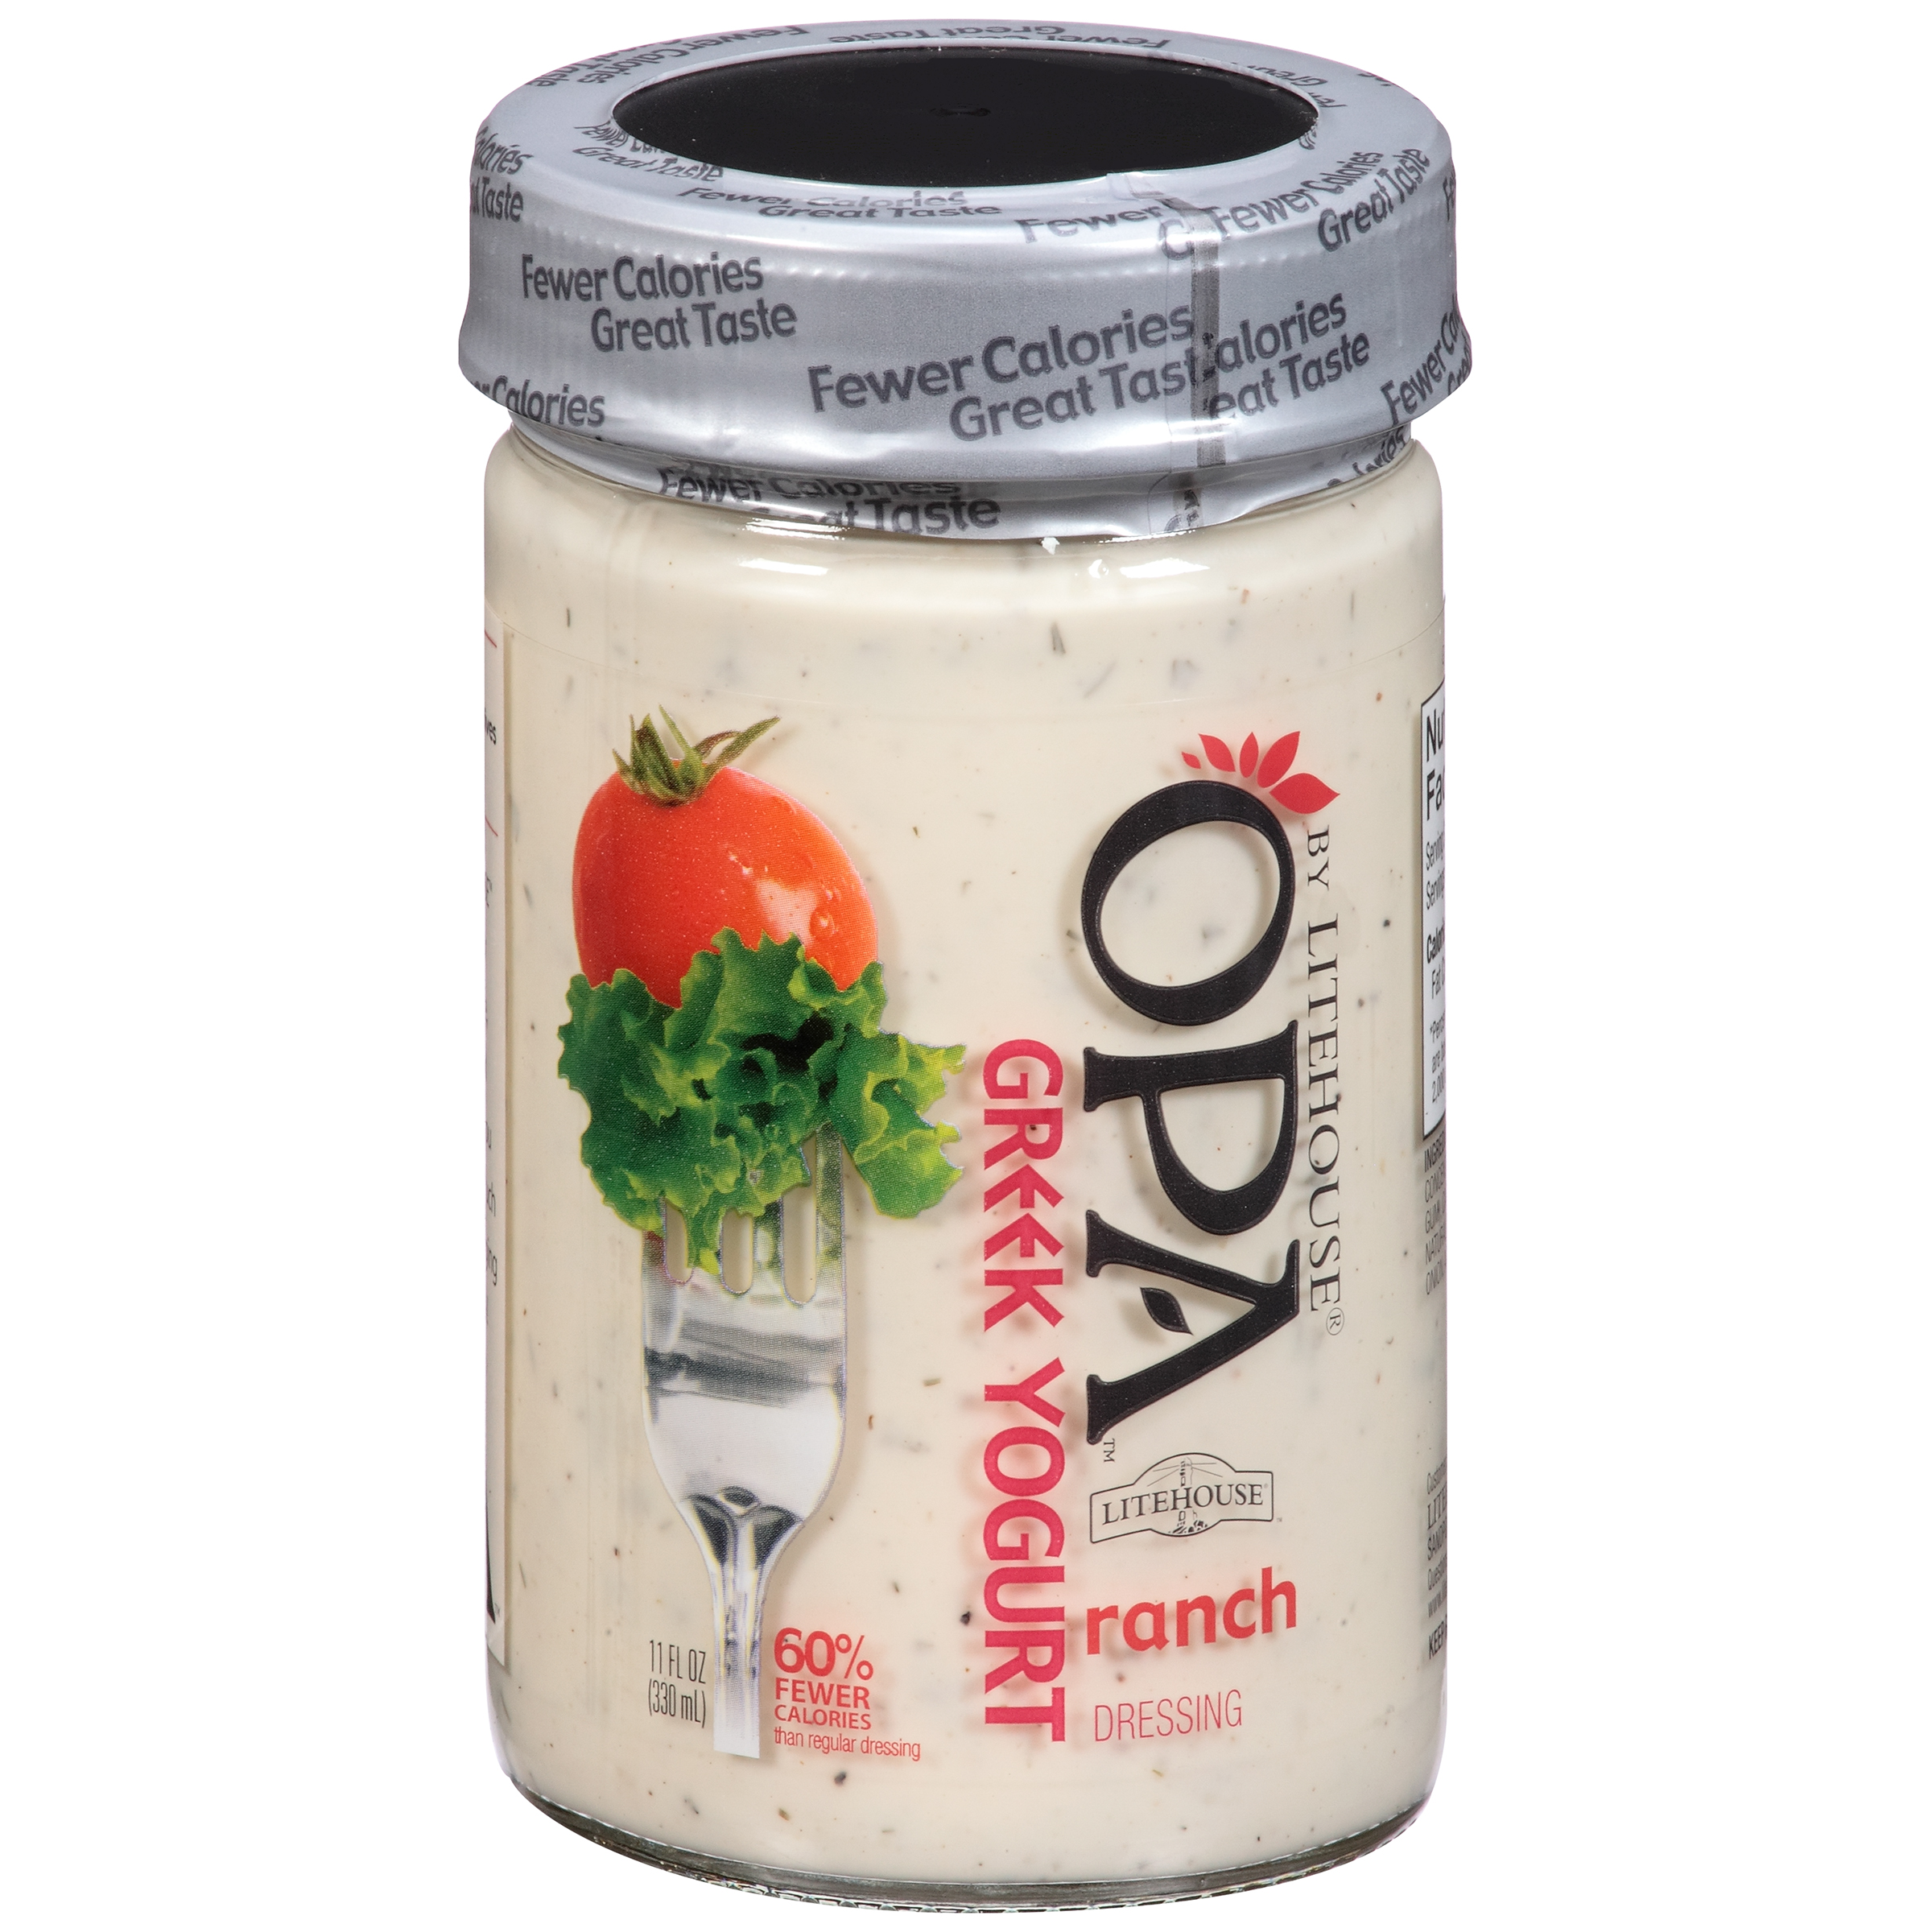 OPA by Litehouse Greek Yogurt Ranch Dressing, 11 fl oz